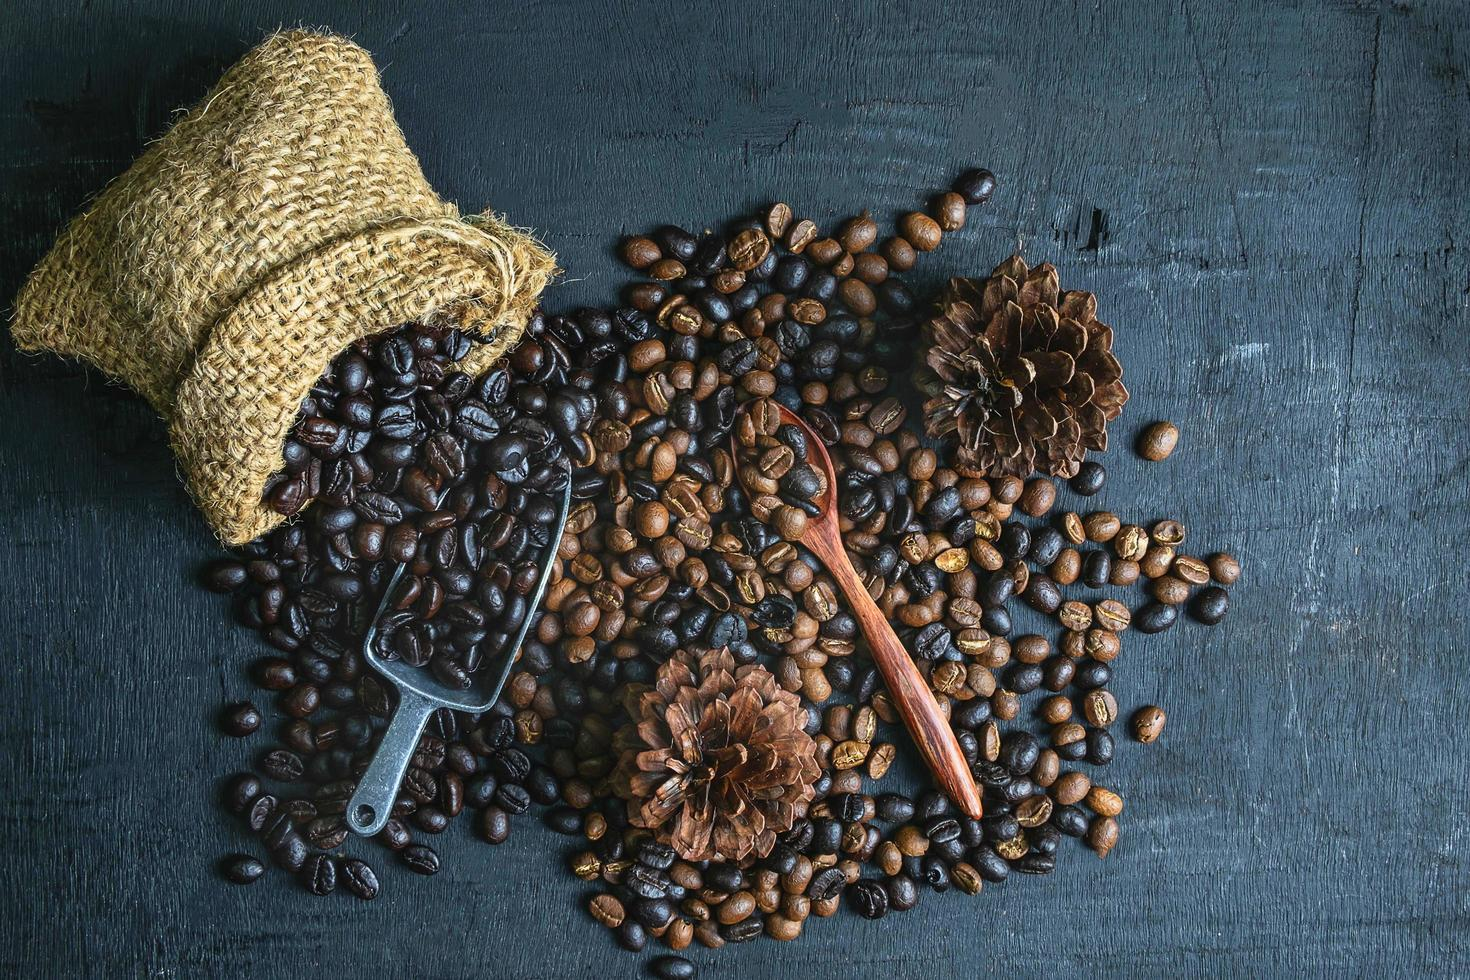 Raw coffee beans and roasted coffee beans photo